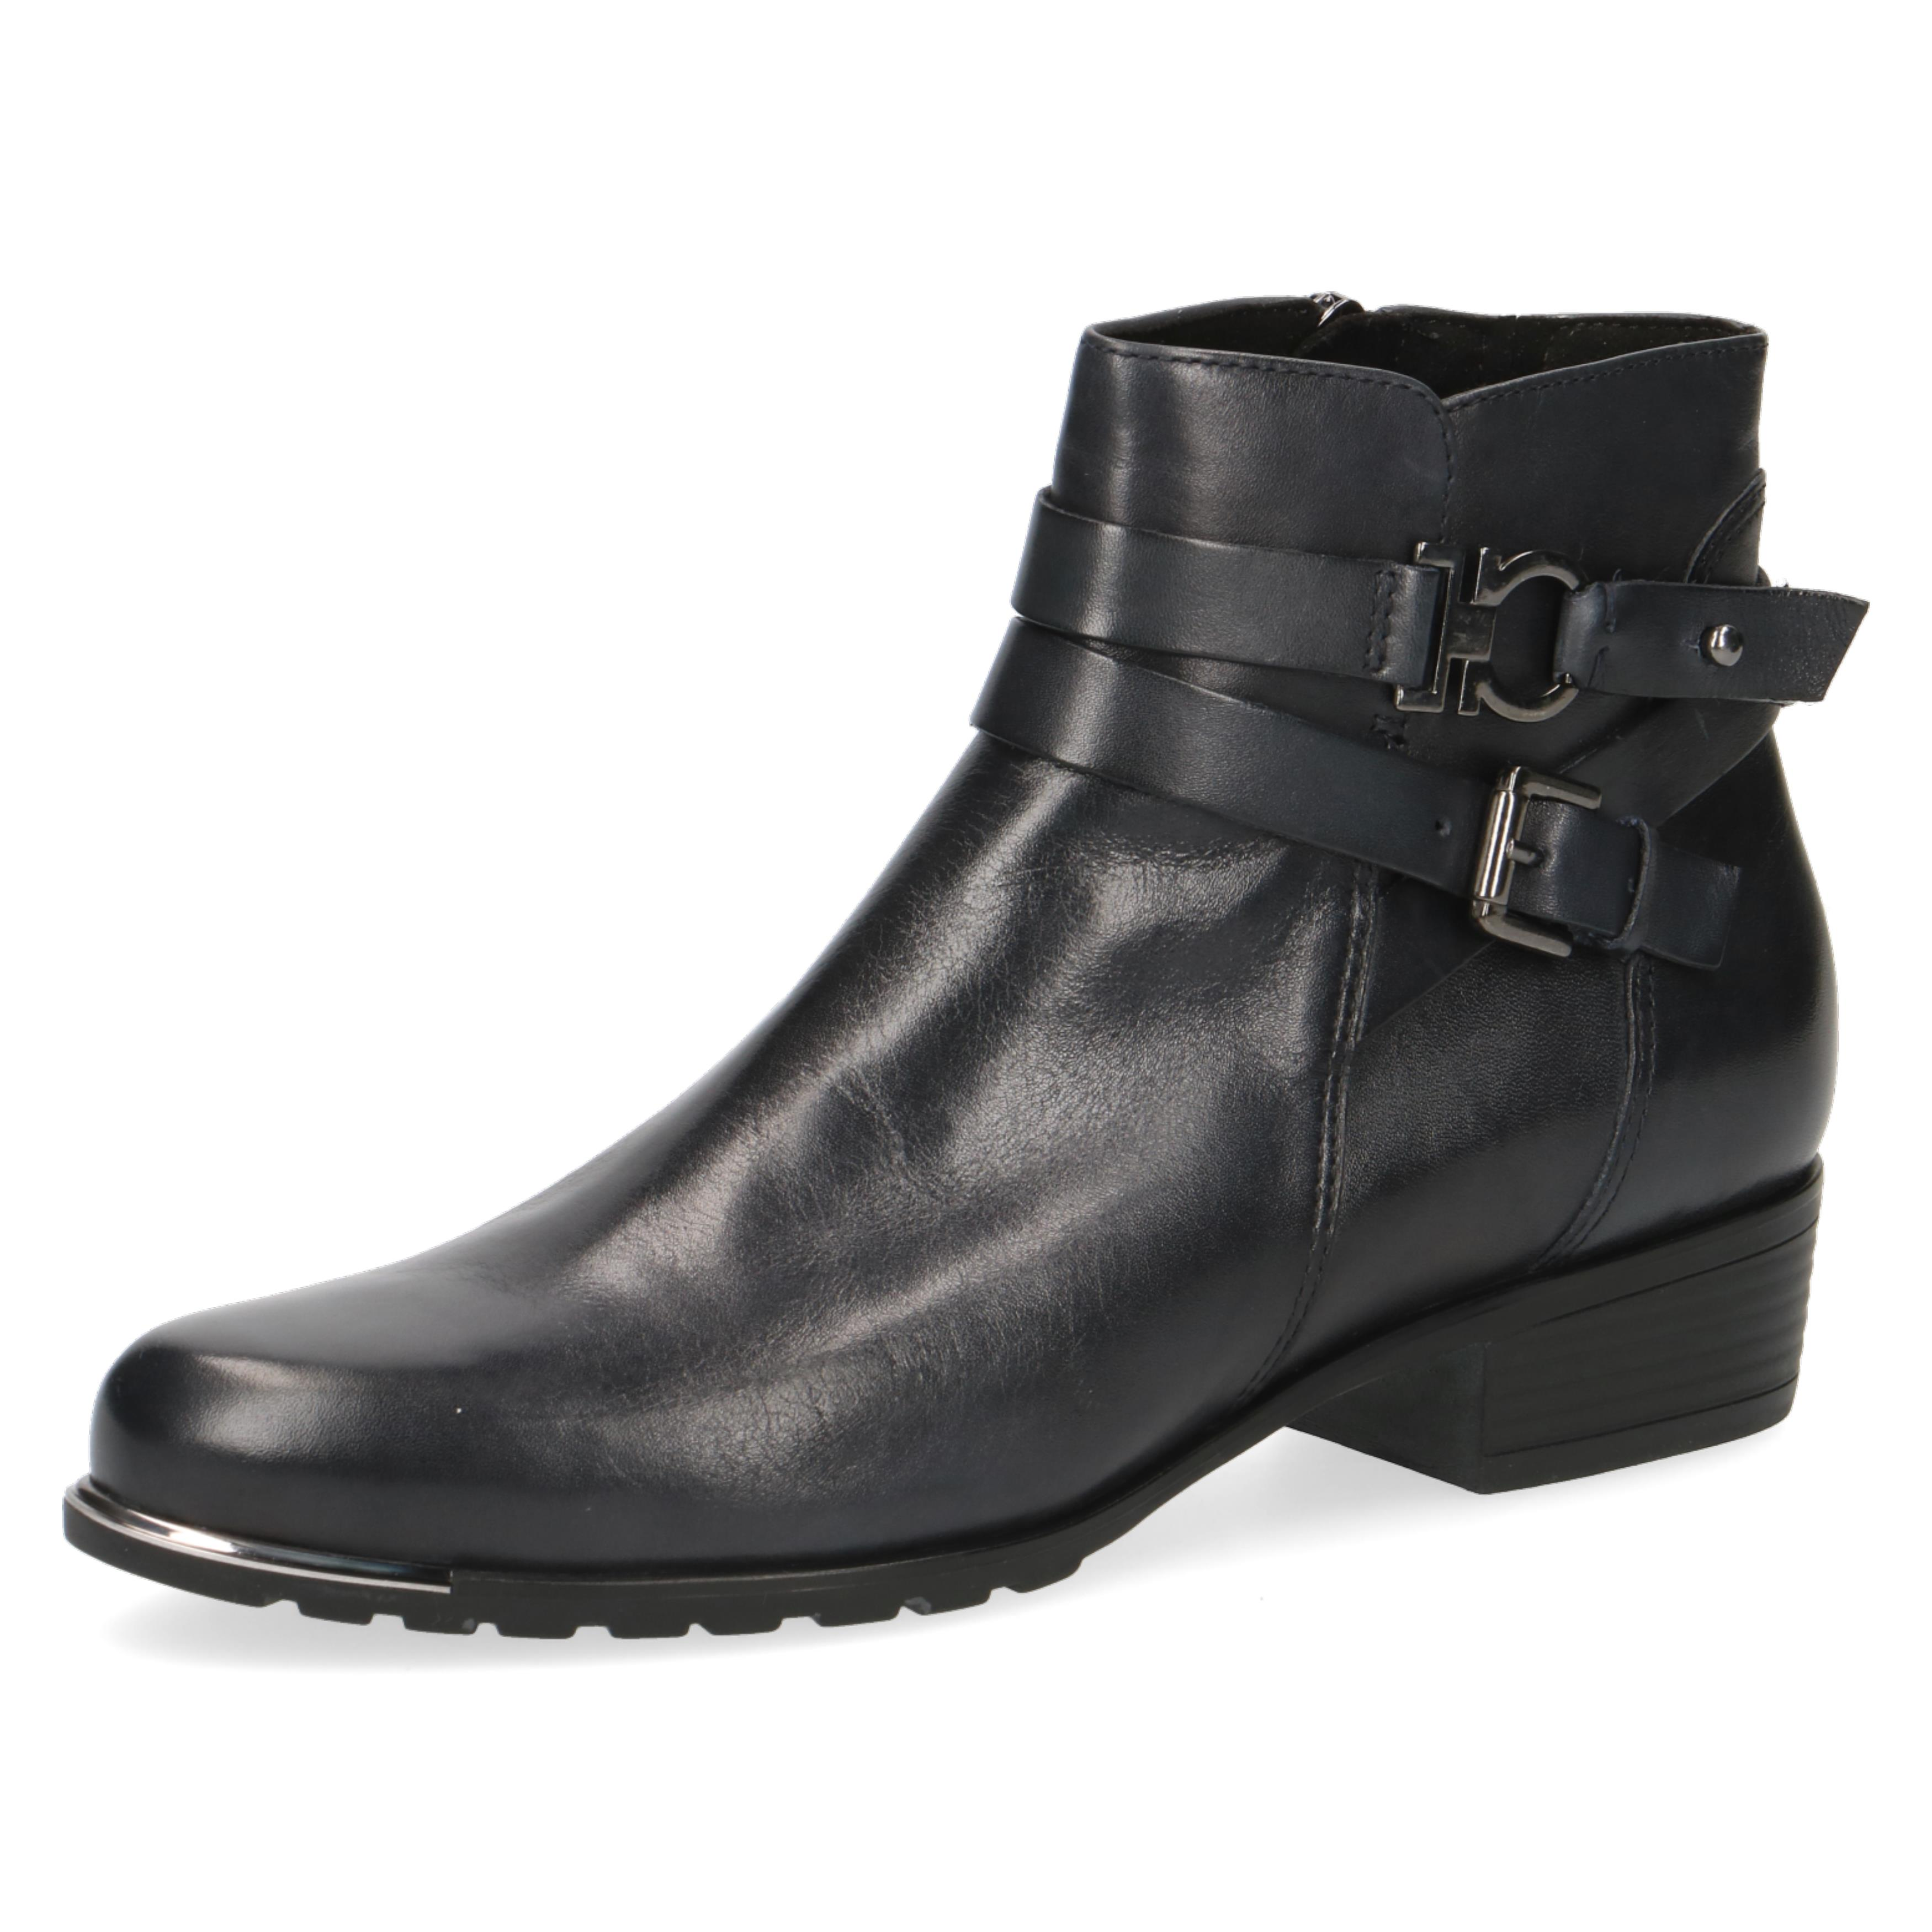 Caprice Black Leather Ankle Boot with Logo Buckle